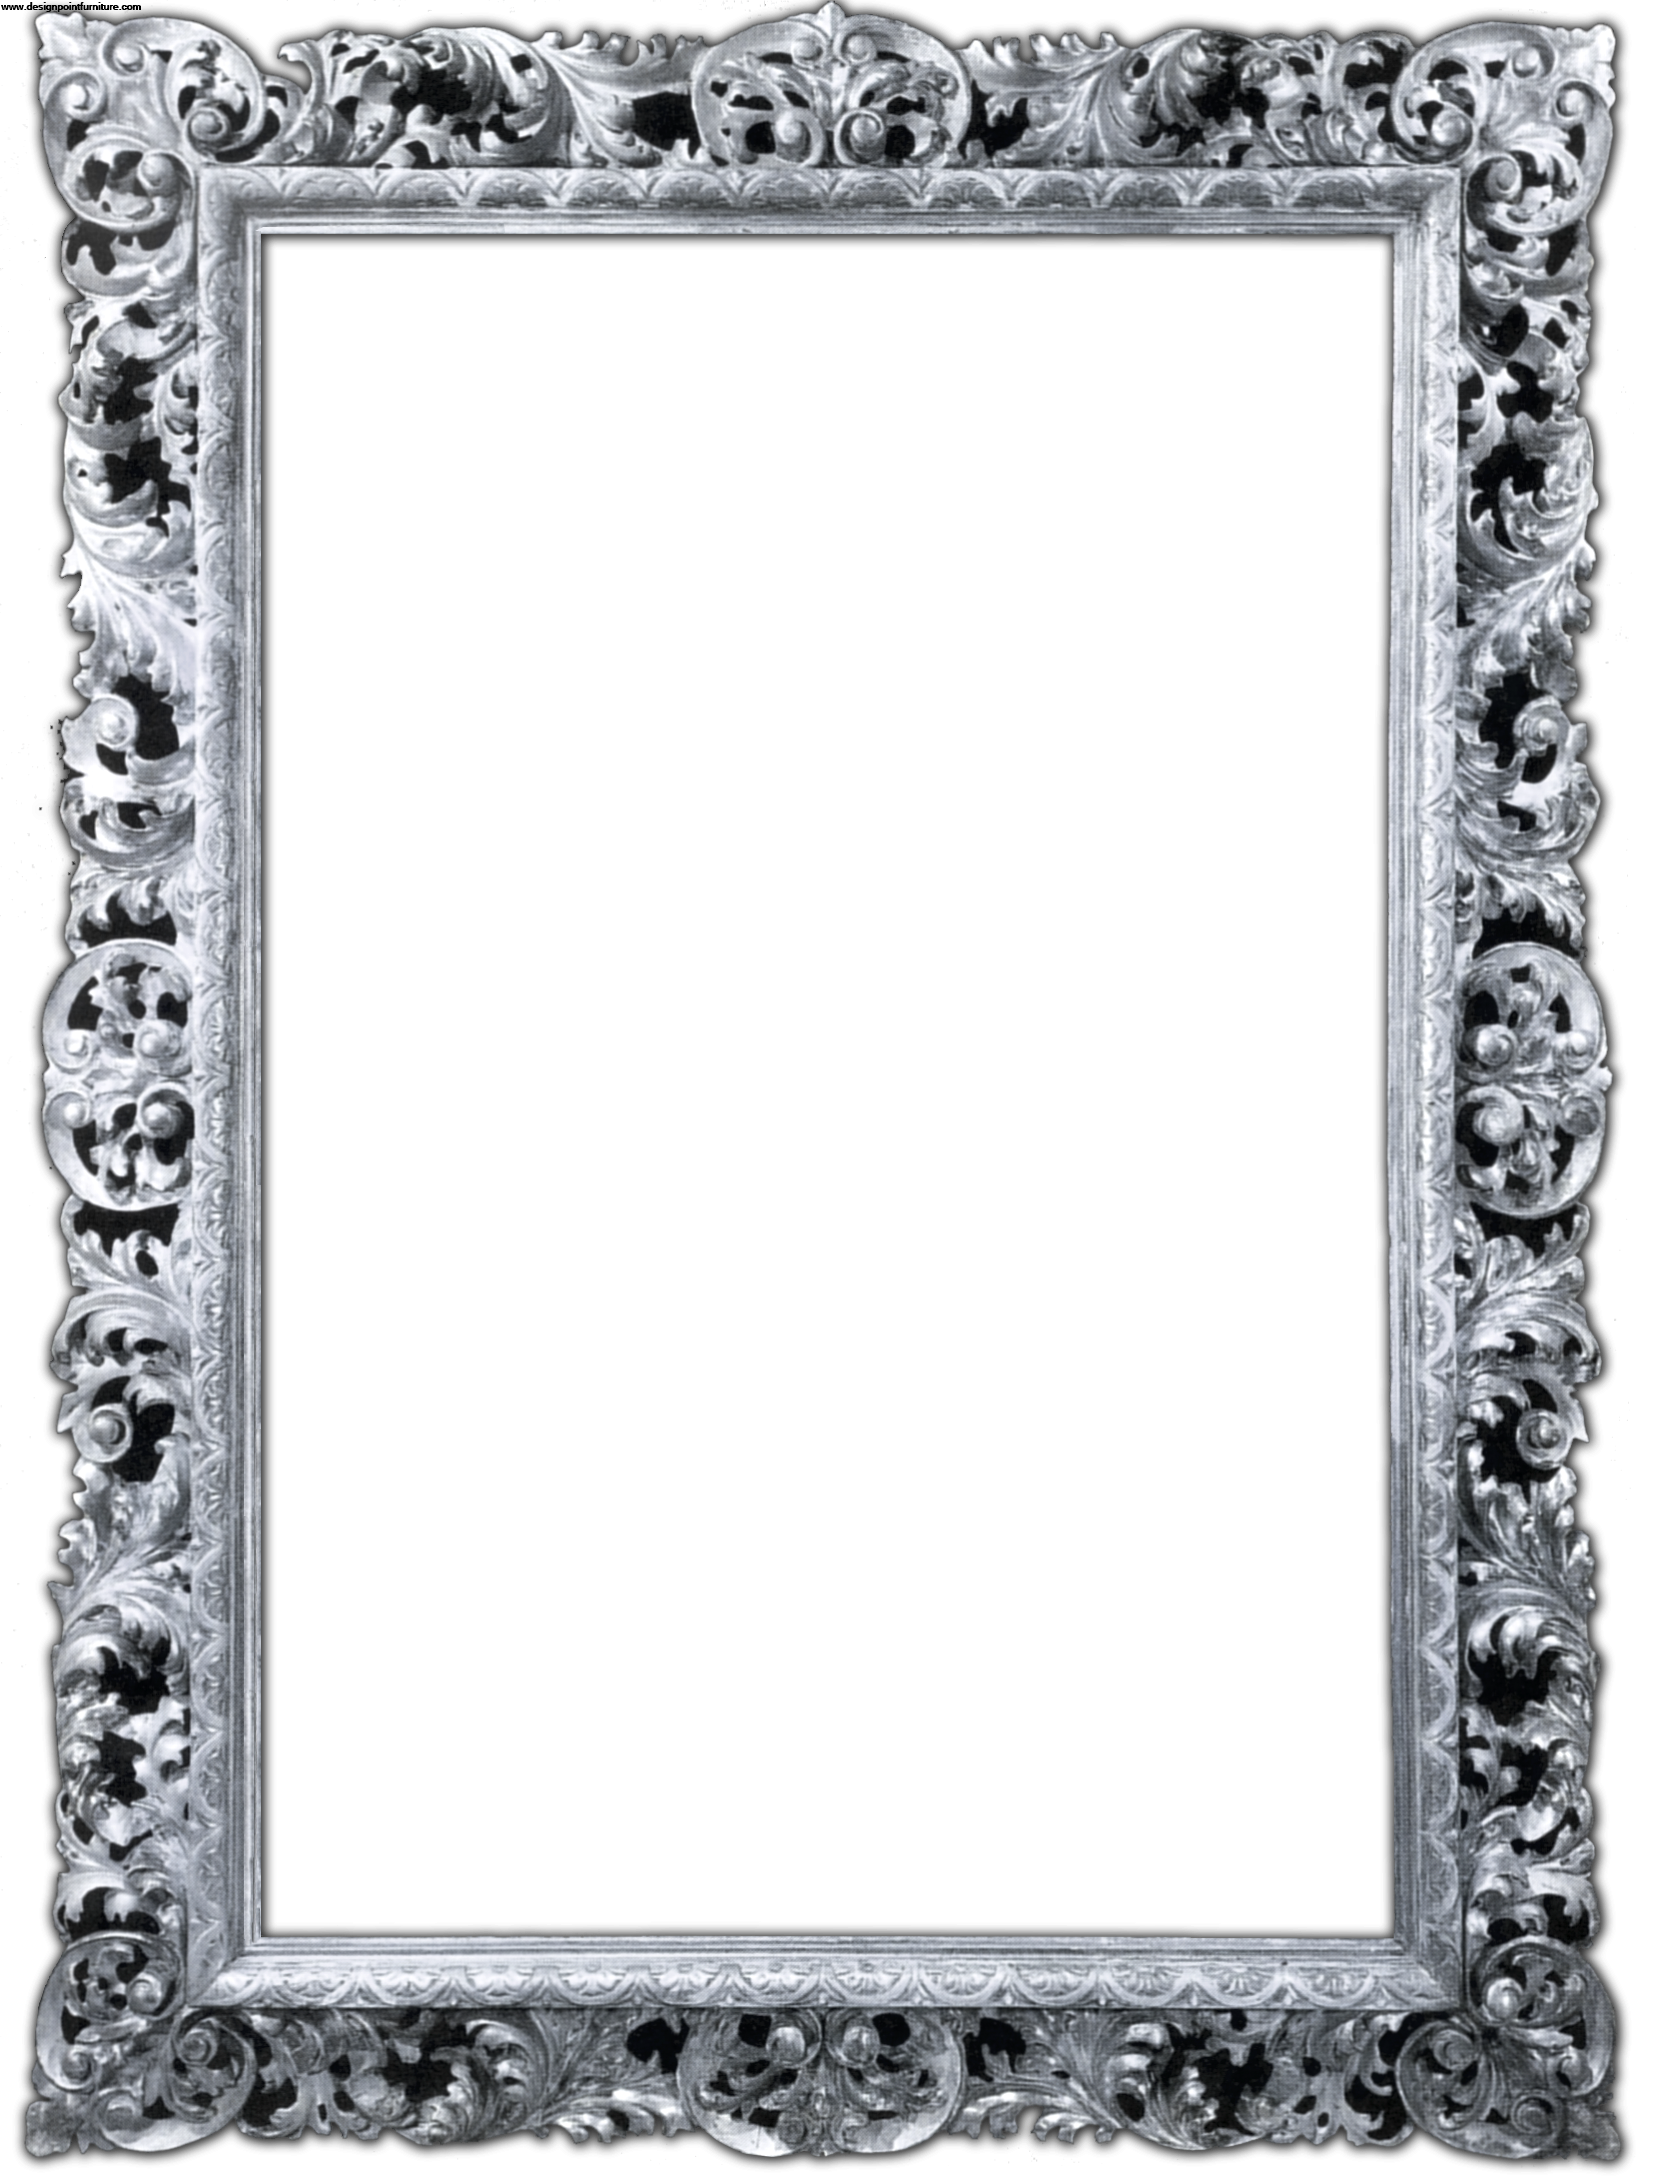 Silver frame png. Ornate cl ic picture